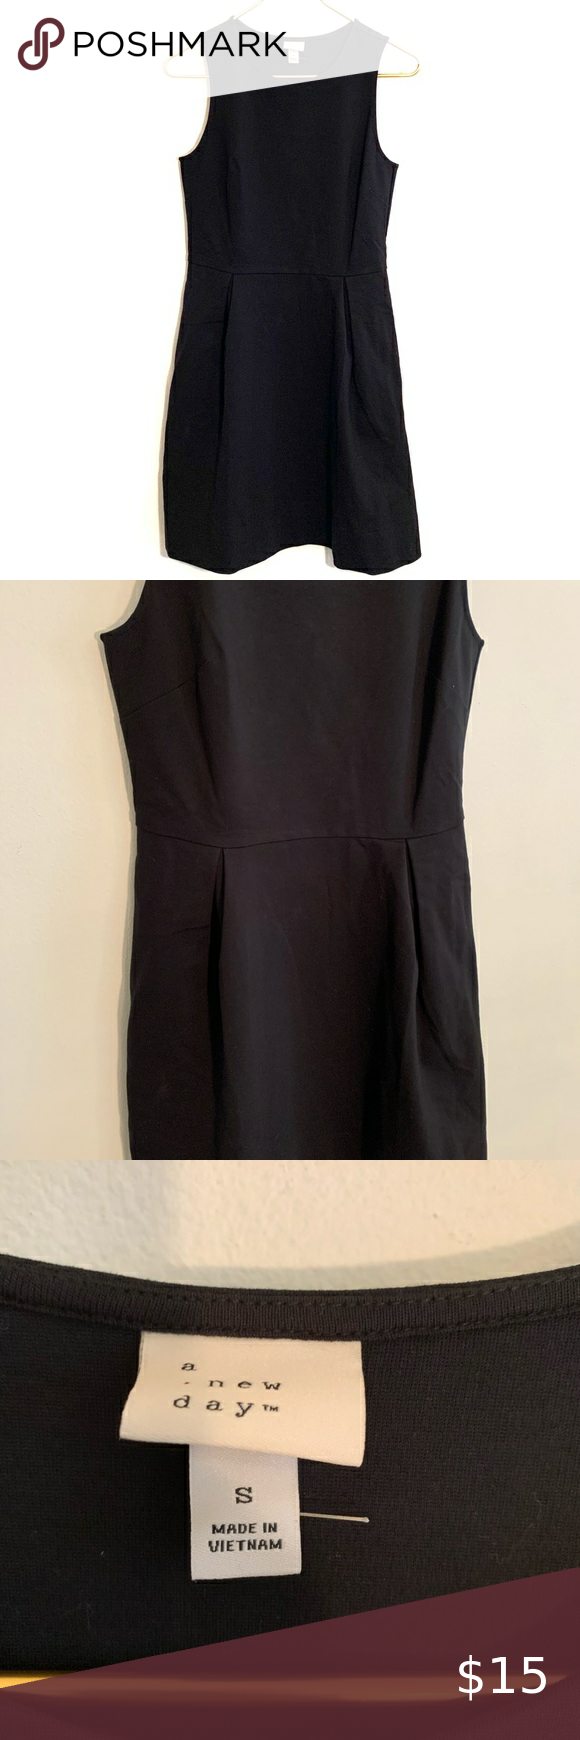 A New Day Little Black Dress Size Small Little Black Dress Black Dress Pullover Styling [ 1740 x 580 Pixel ]